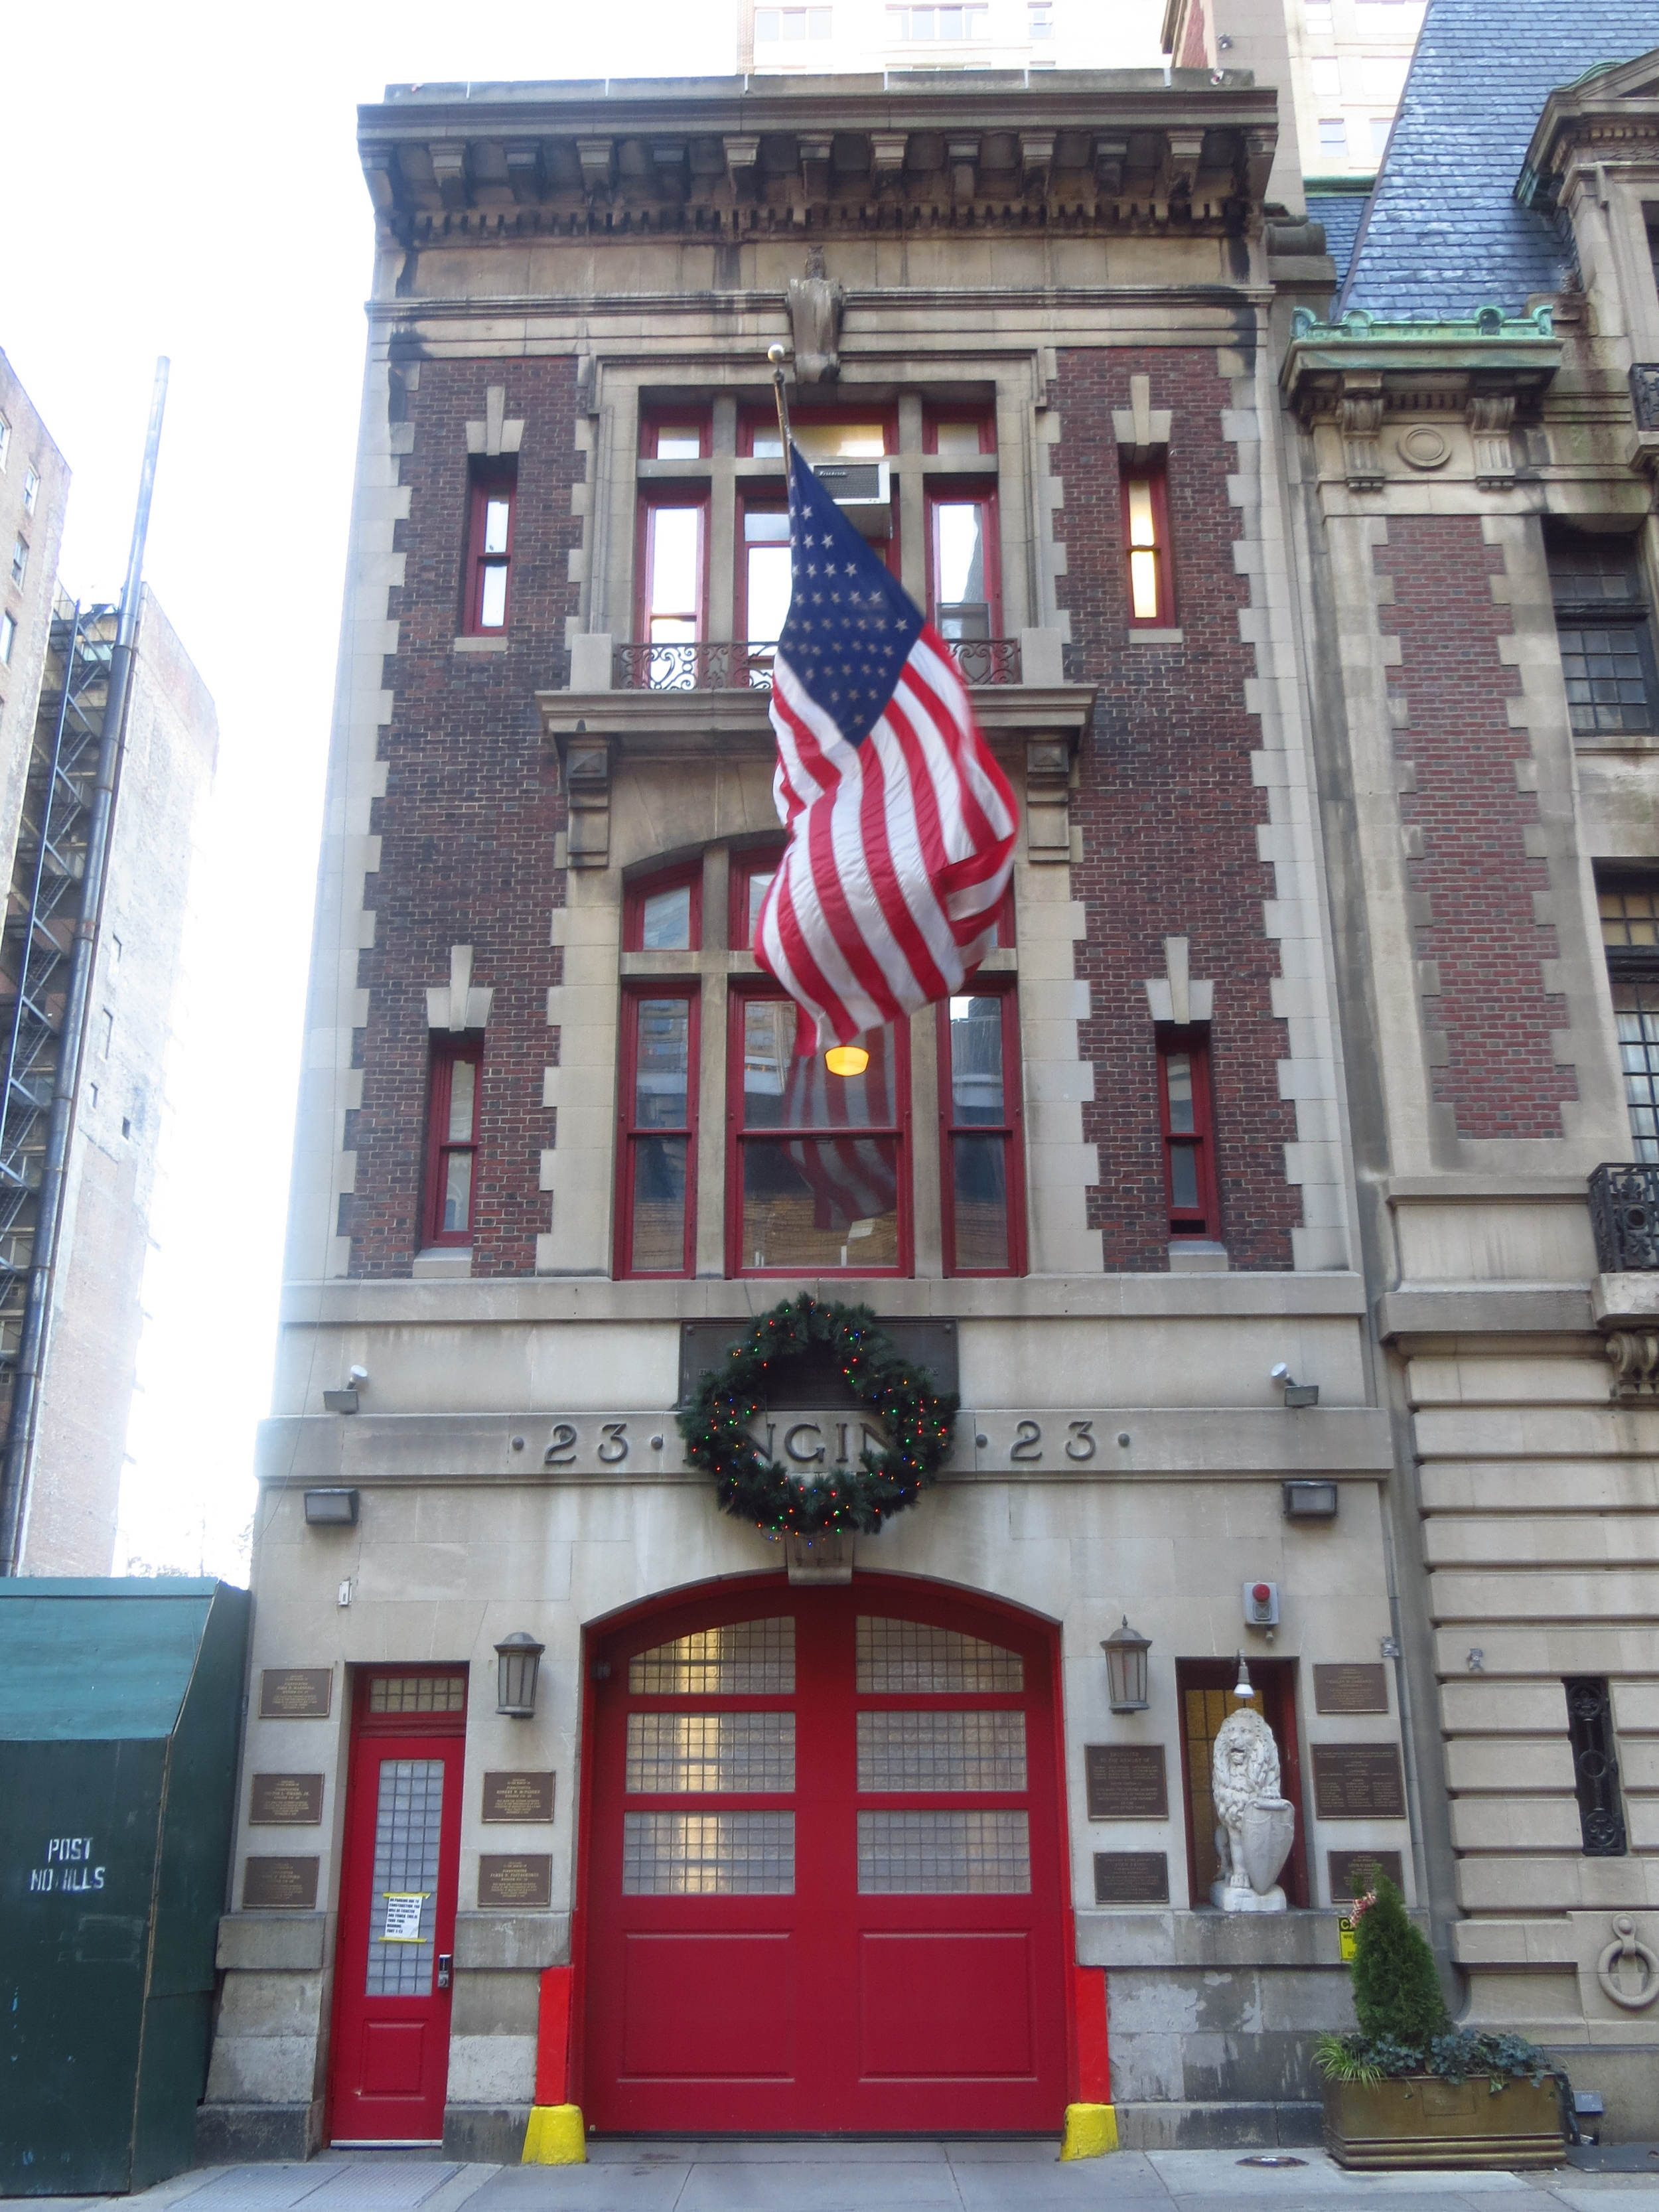 Fire Station (a lot of 9/11 plaques on this one)